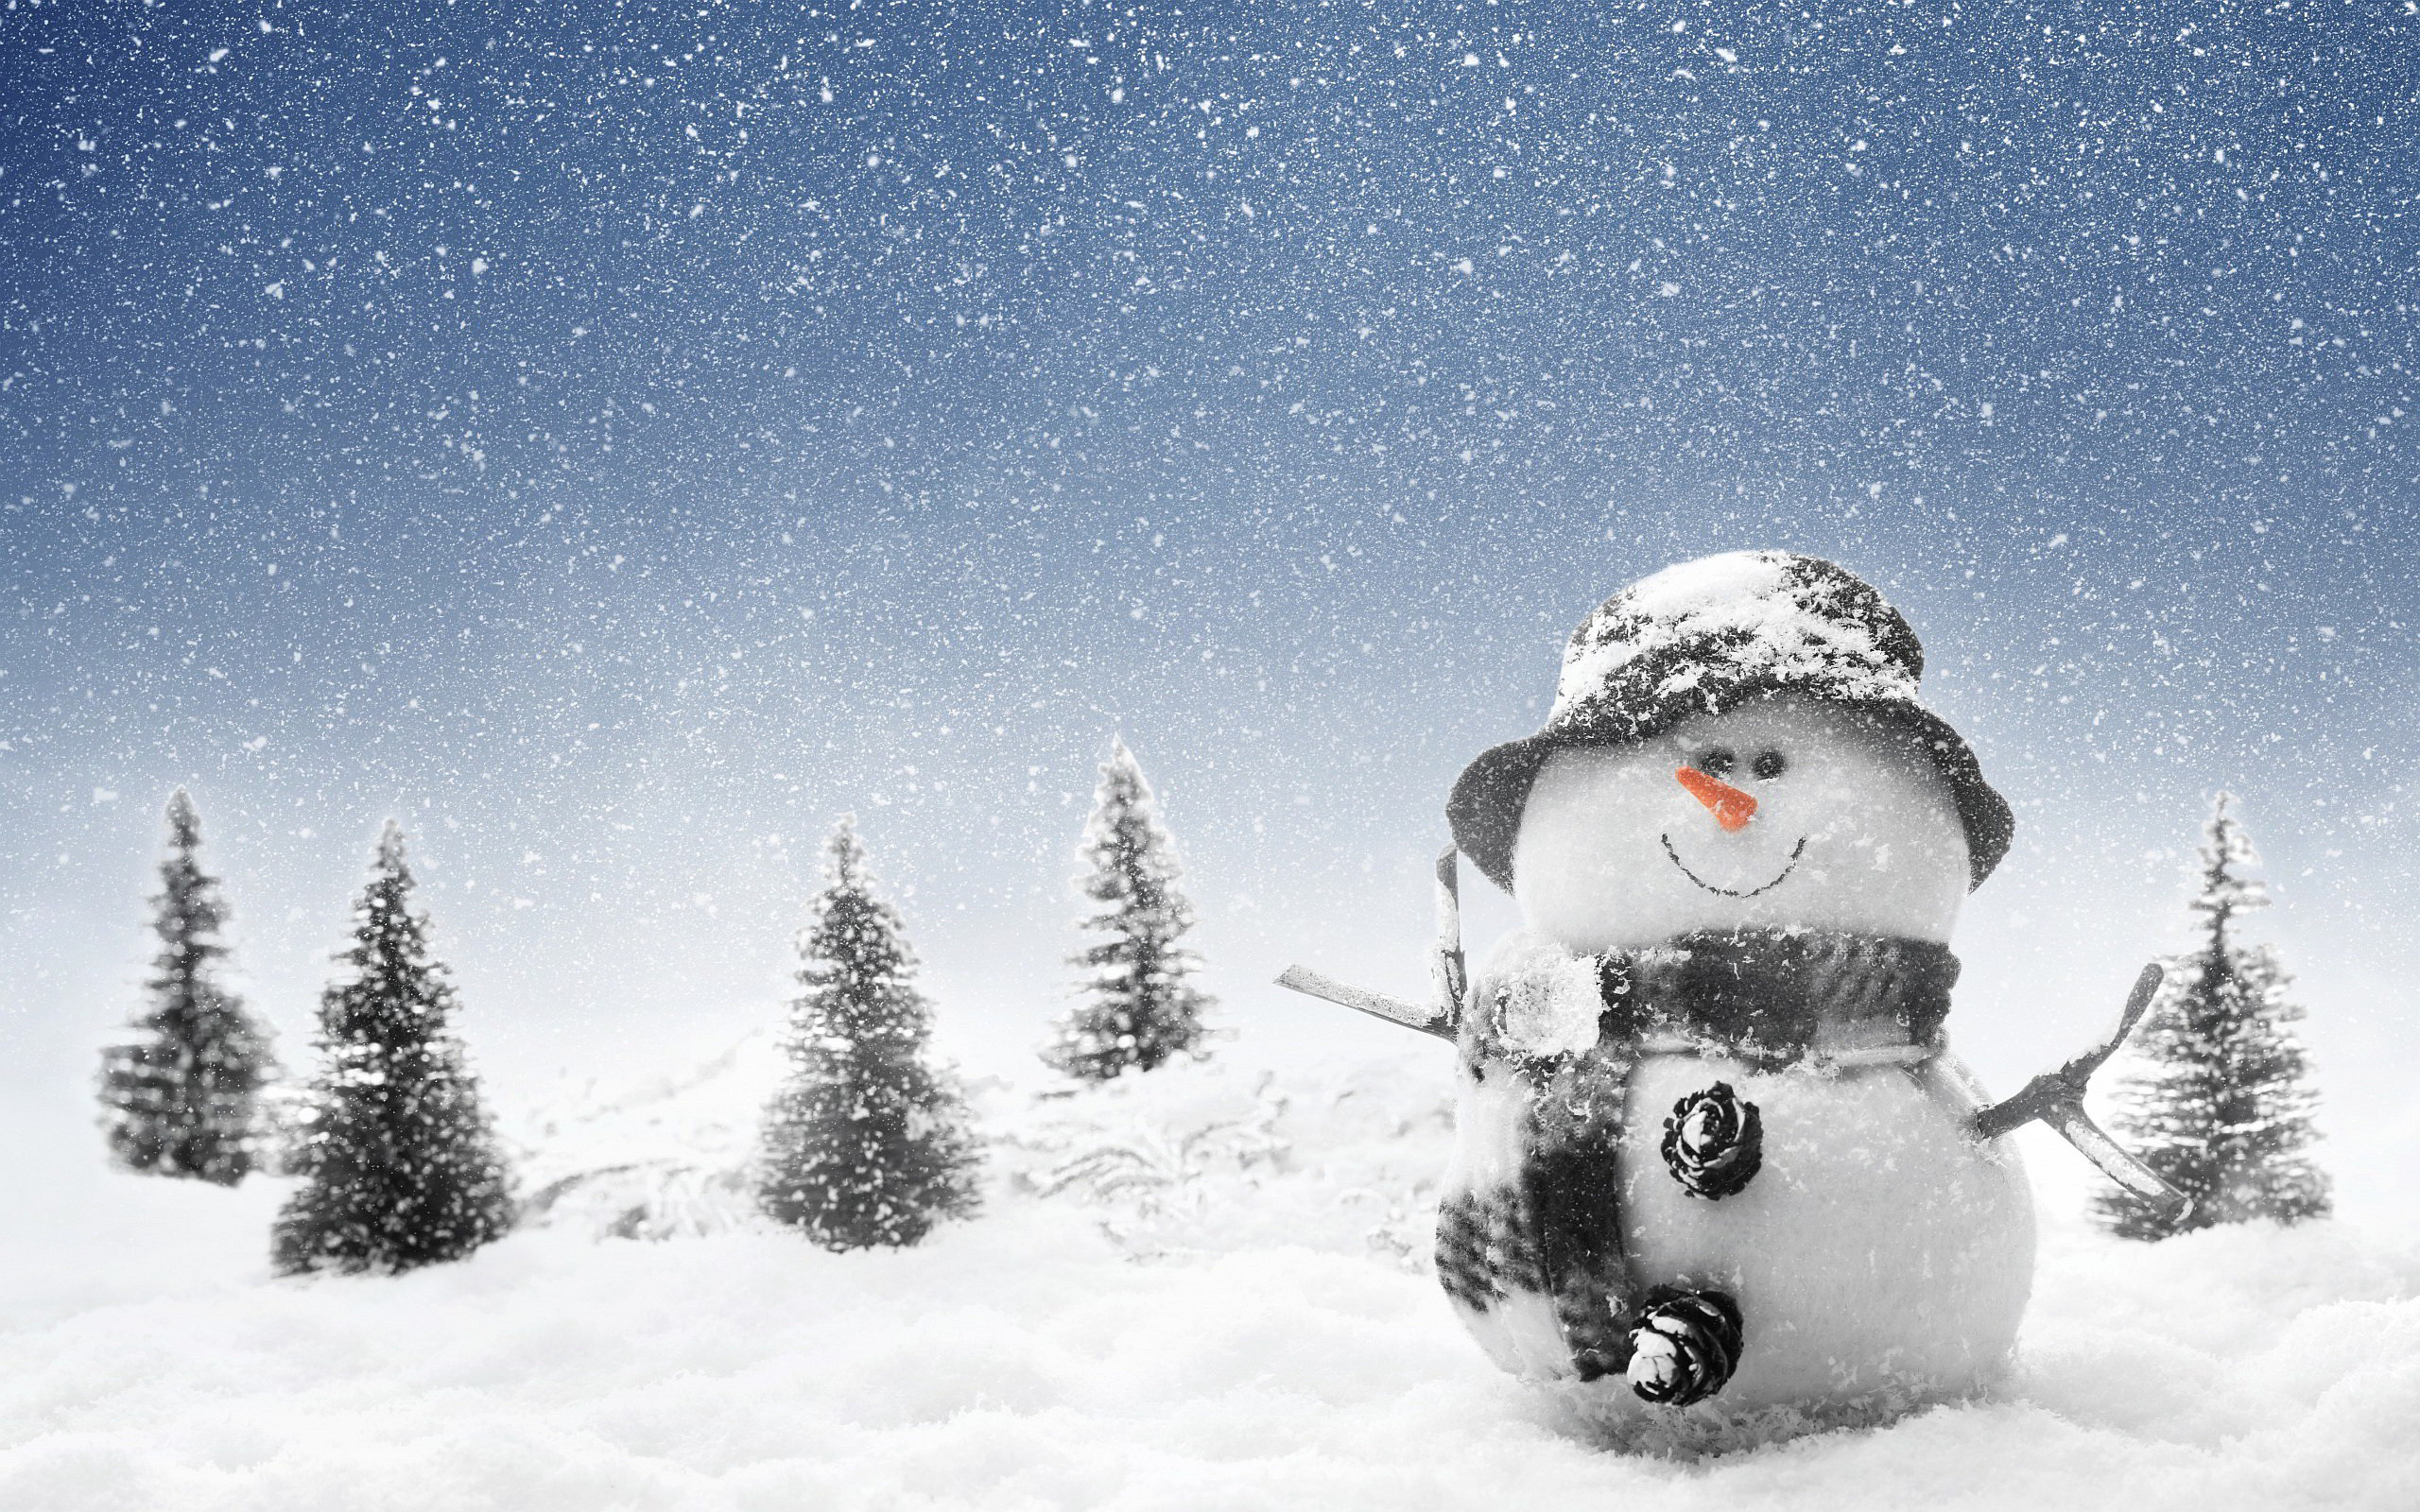 2560x1600 Winter Snowman Wallpapers Pictures Photos Images #3702